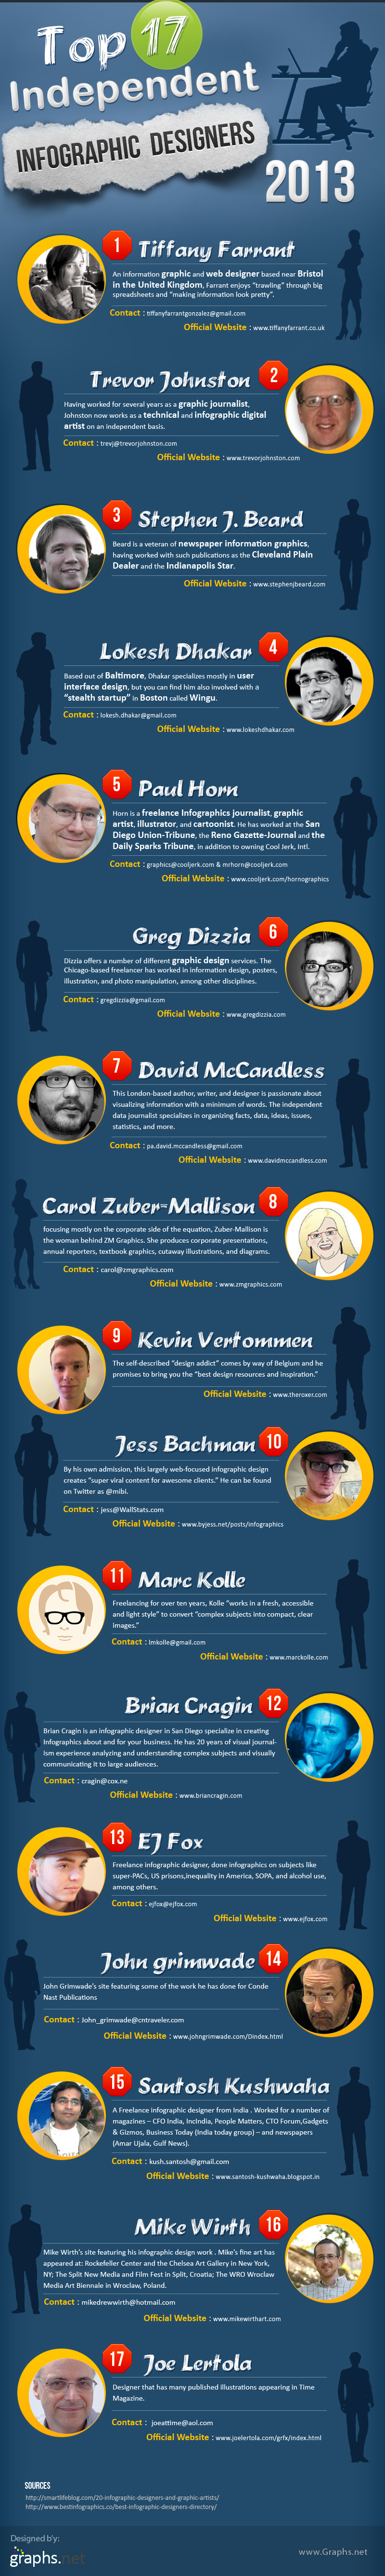 Top 17 Independent Infographic Designer